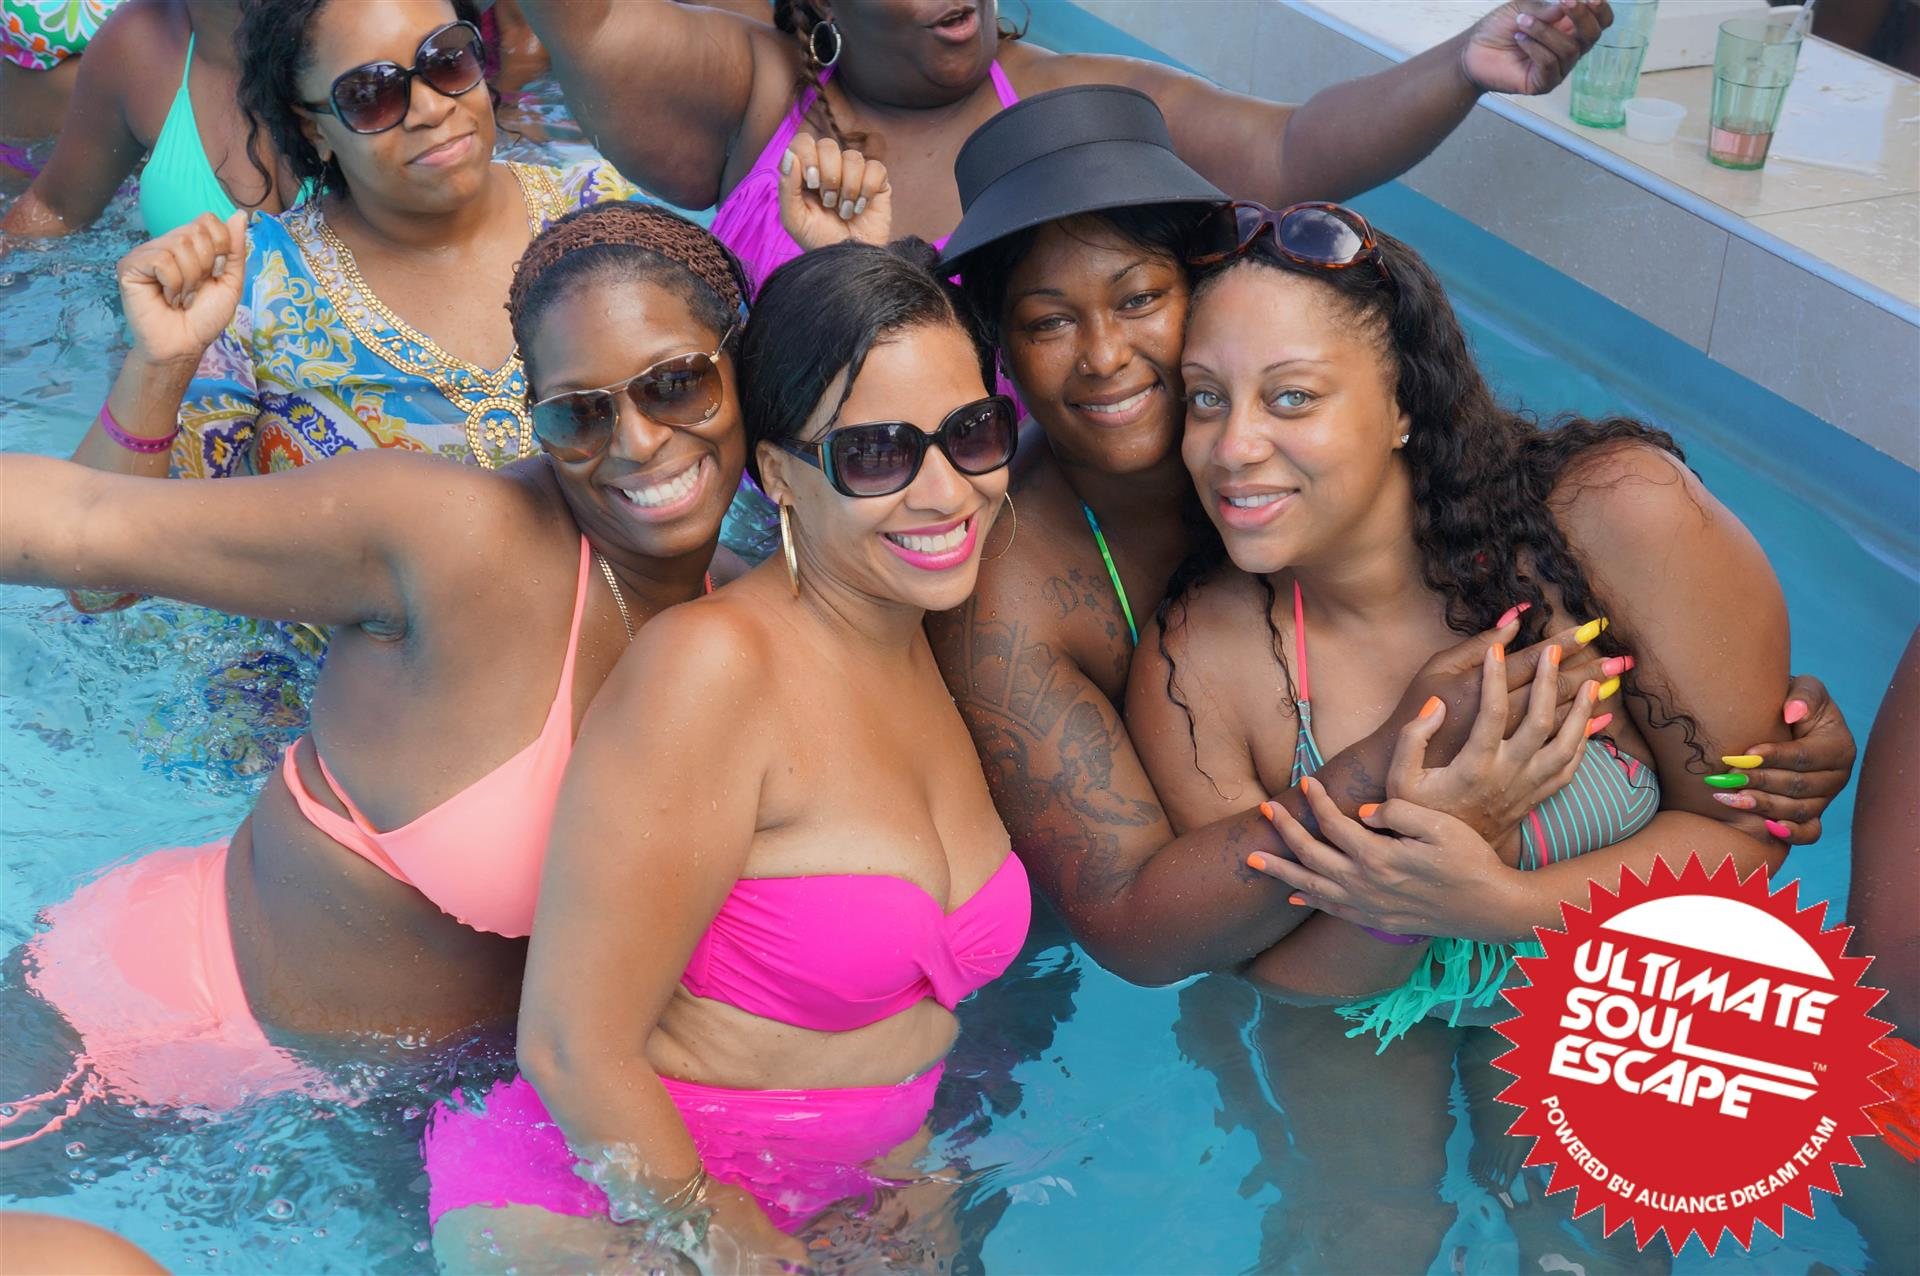 A group of women posing in the pool with their swimwear